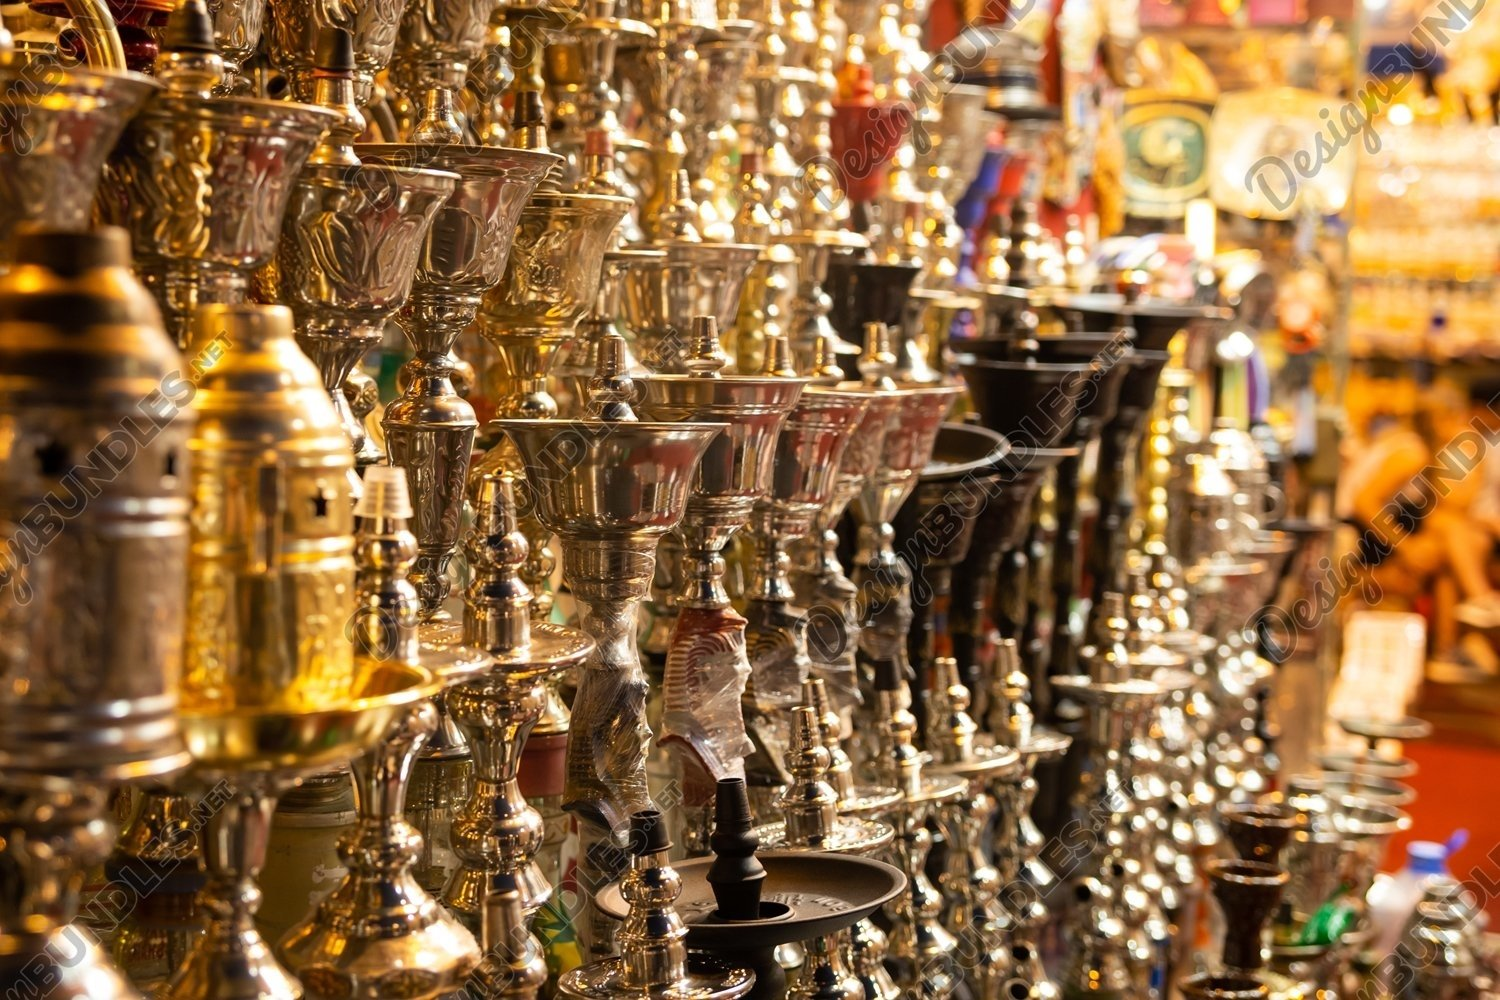 Photo of a group of hookahs in the store example image 1